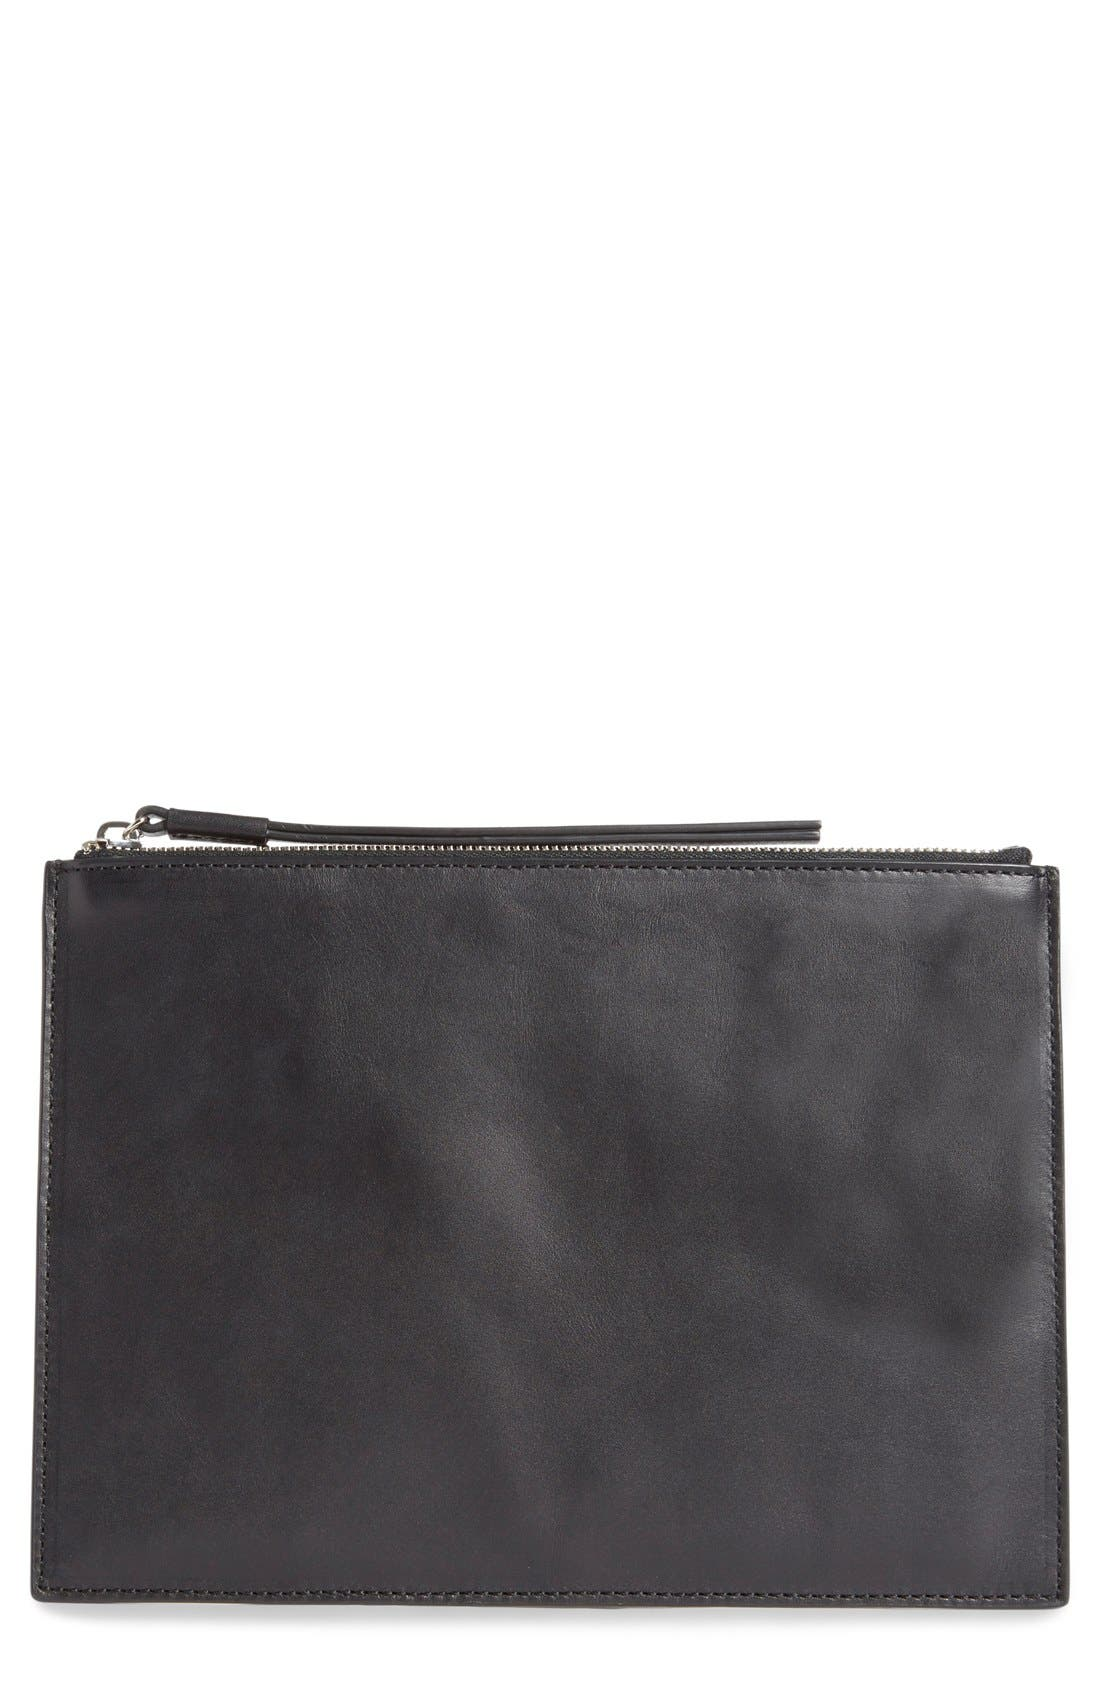 Flat Leather Pouch,                             Main thumbnail 1, color,                             001